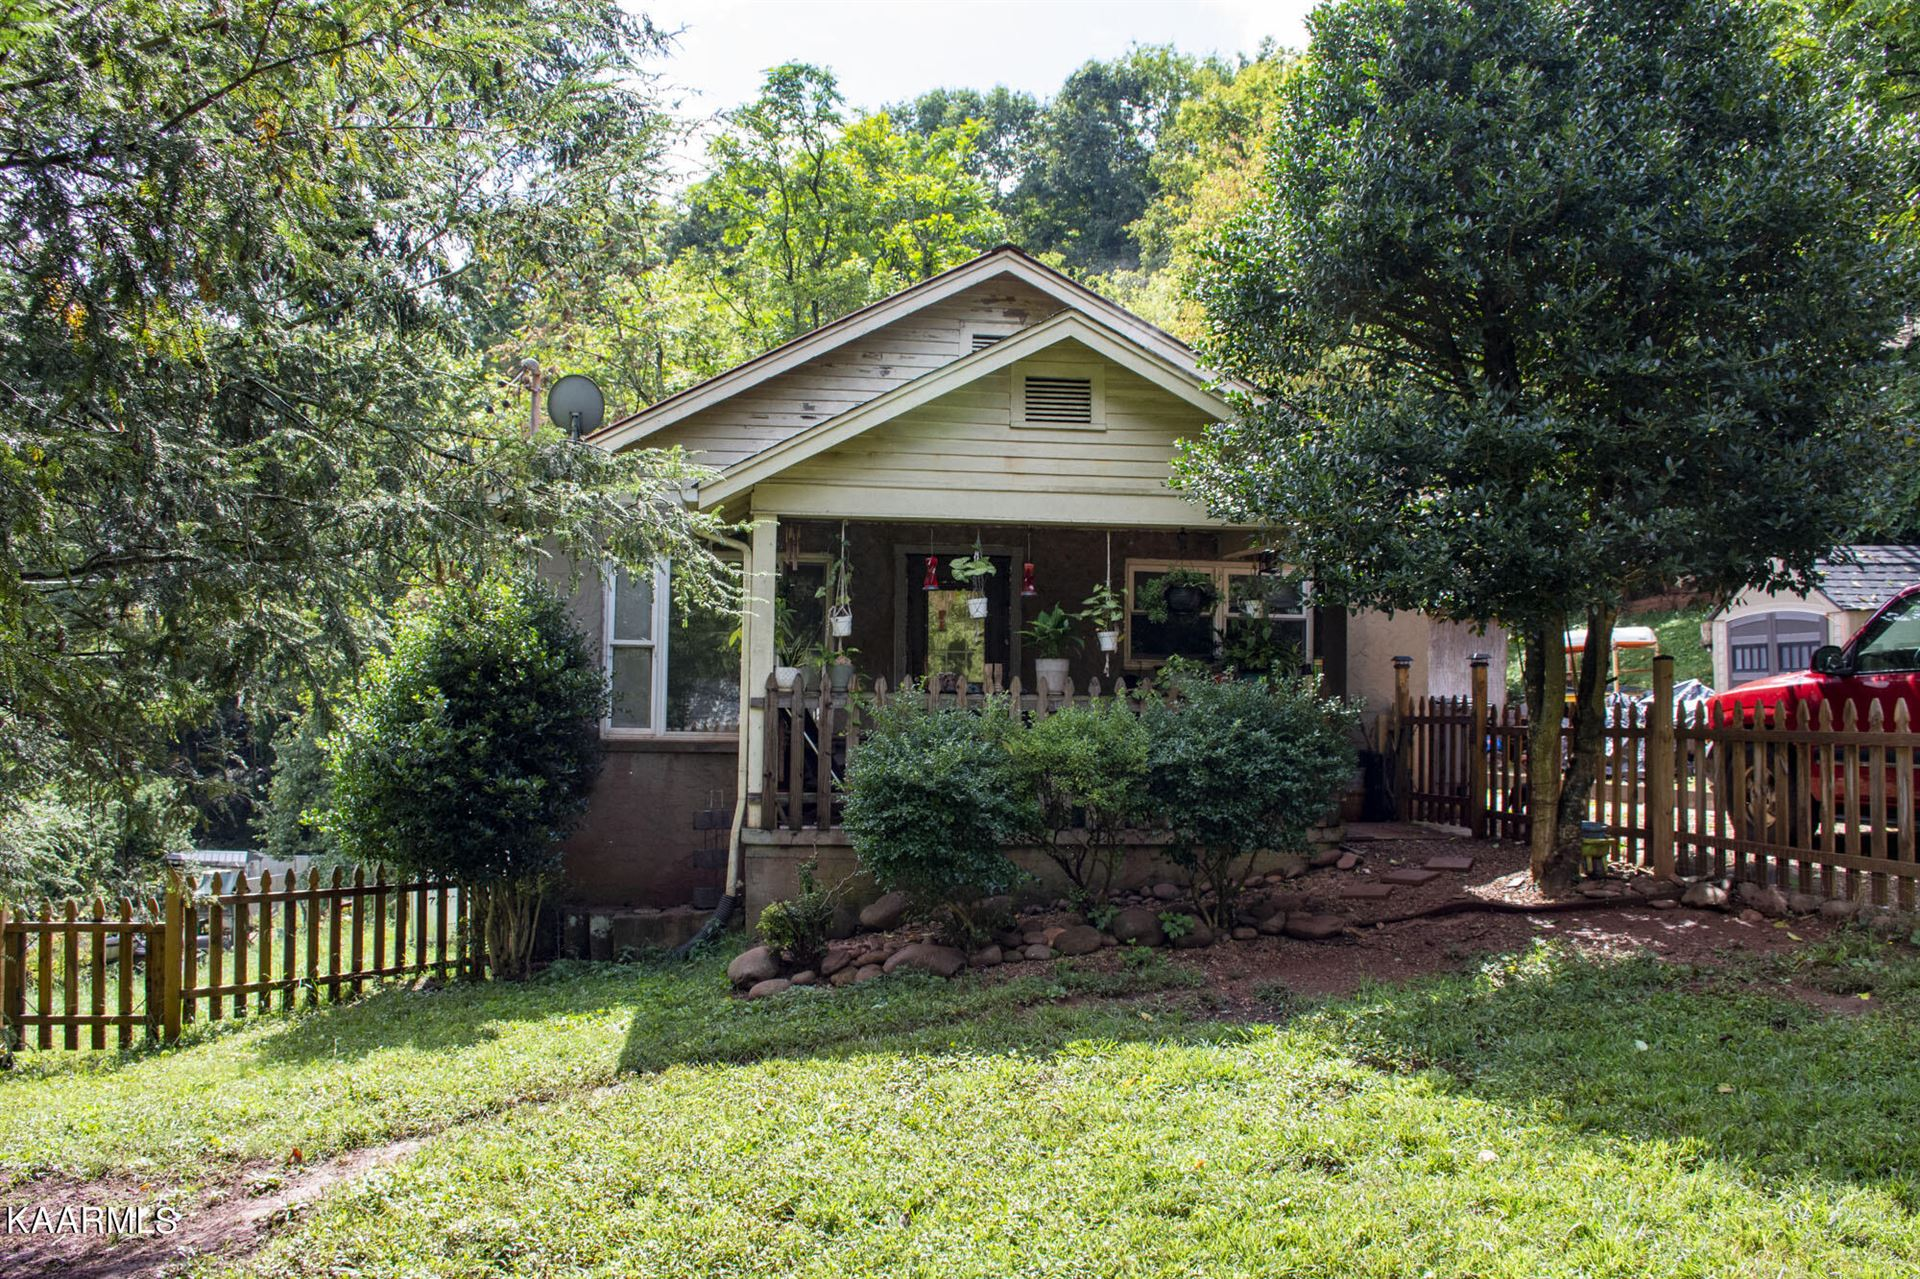 Photo of 4217 Cruze Rd, Knoxville, TN 37920 (MLS # 1171711)